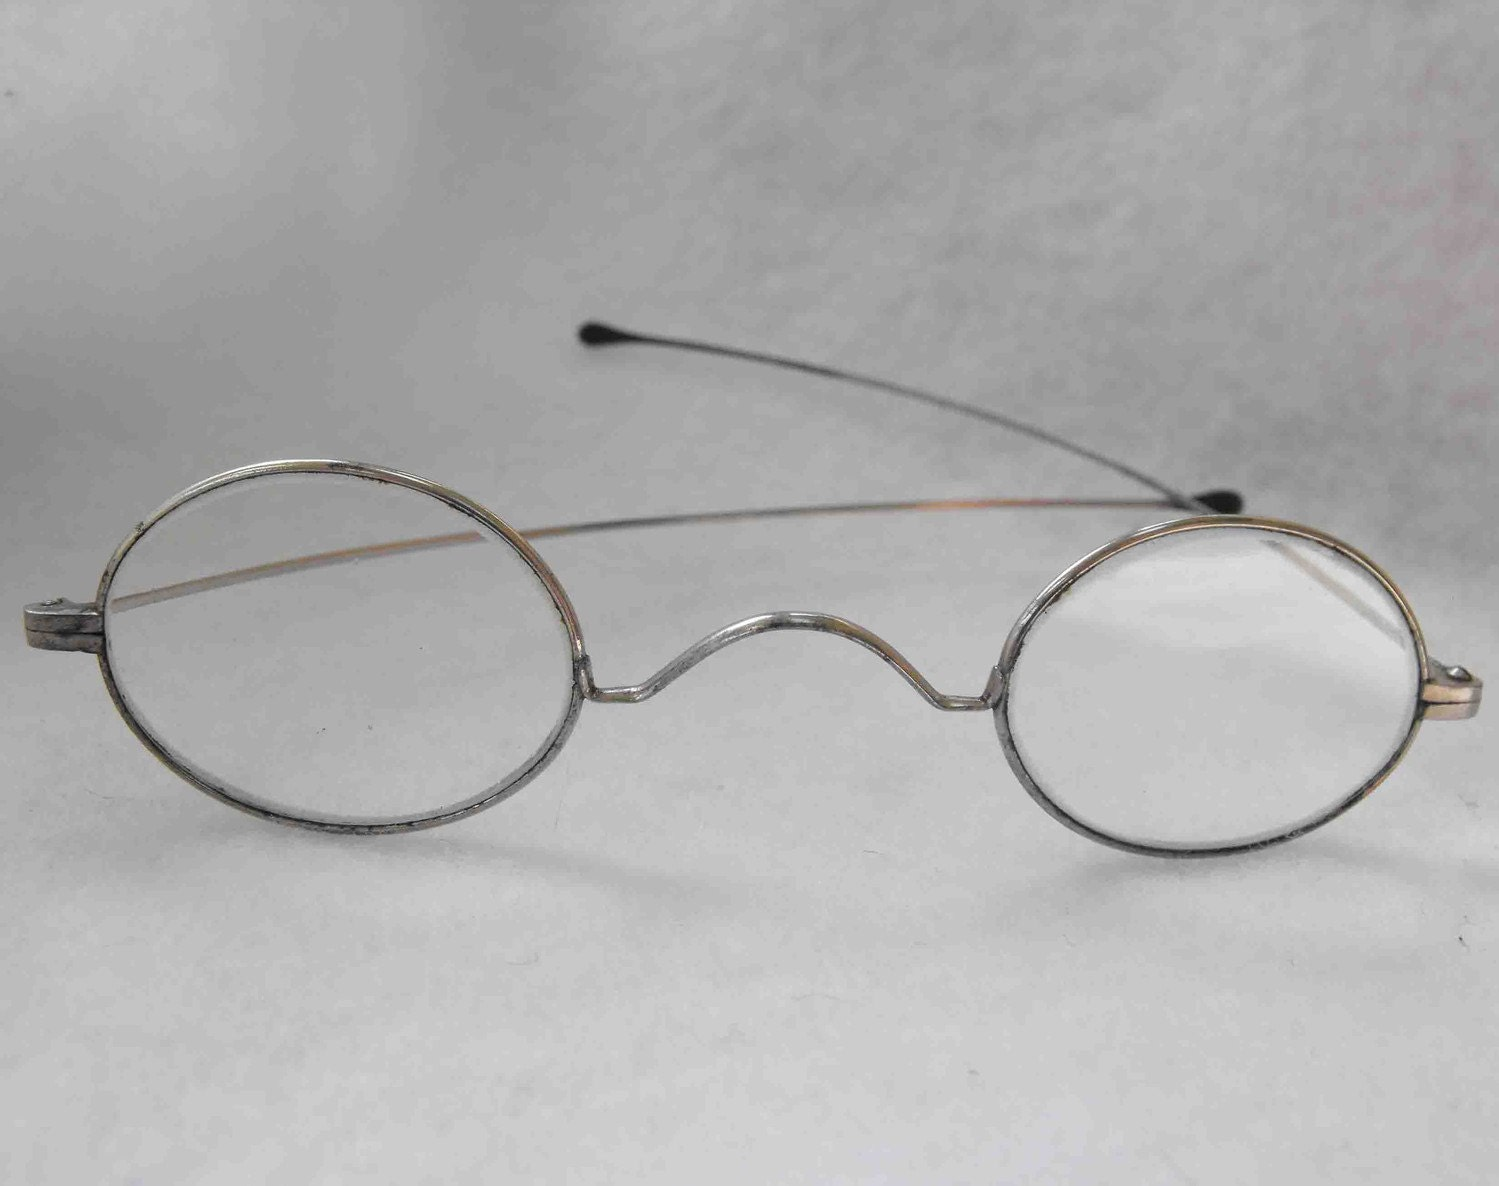 Eyeglass Frames Without Temples : Antique Eyeglasses Metal Frames ca 1880-1890 NT-358 by ...